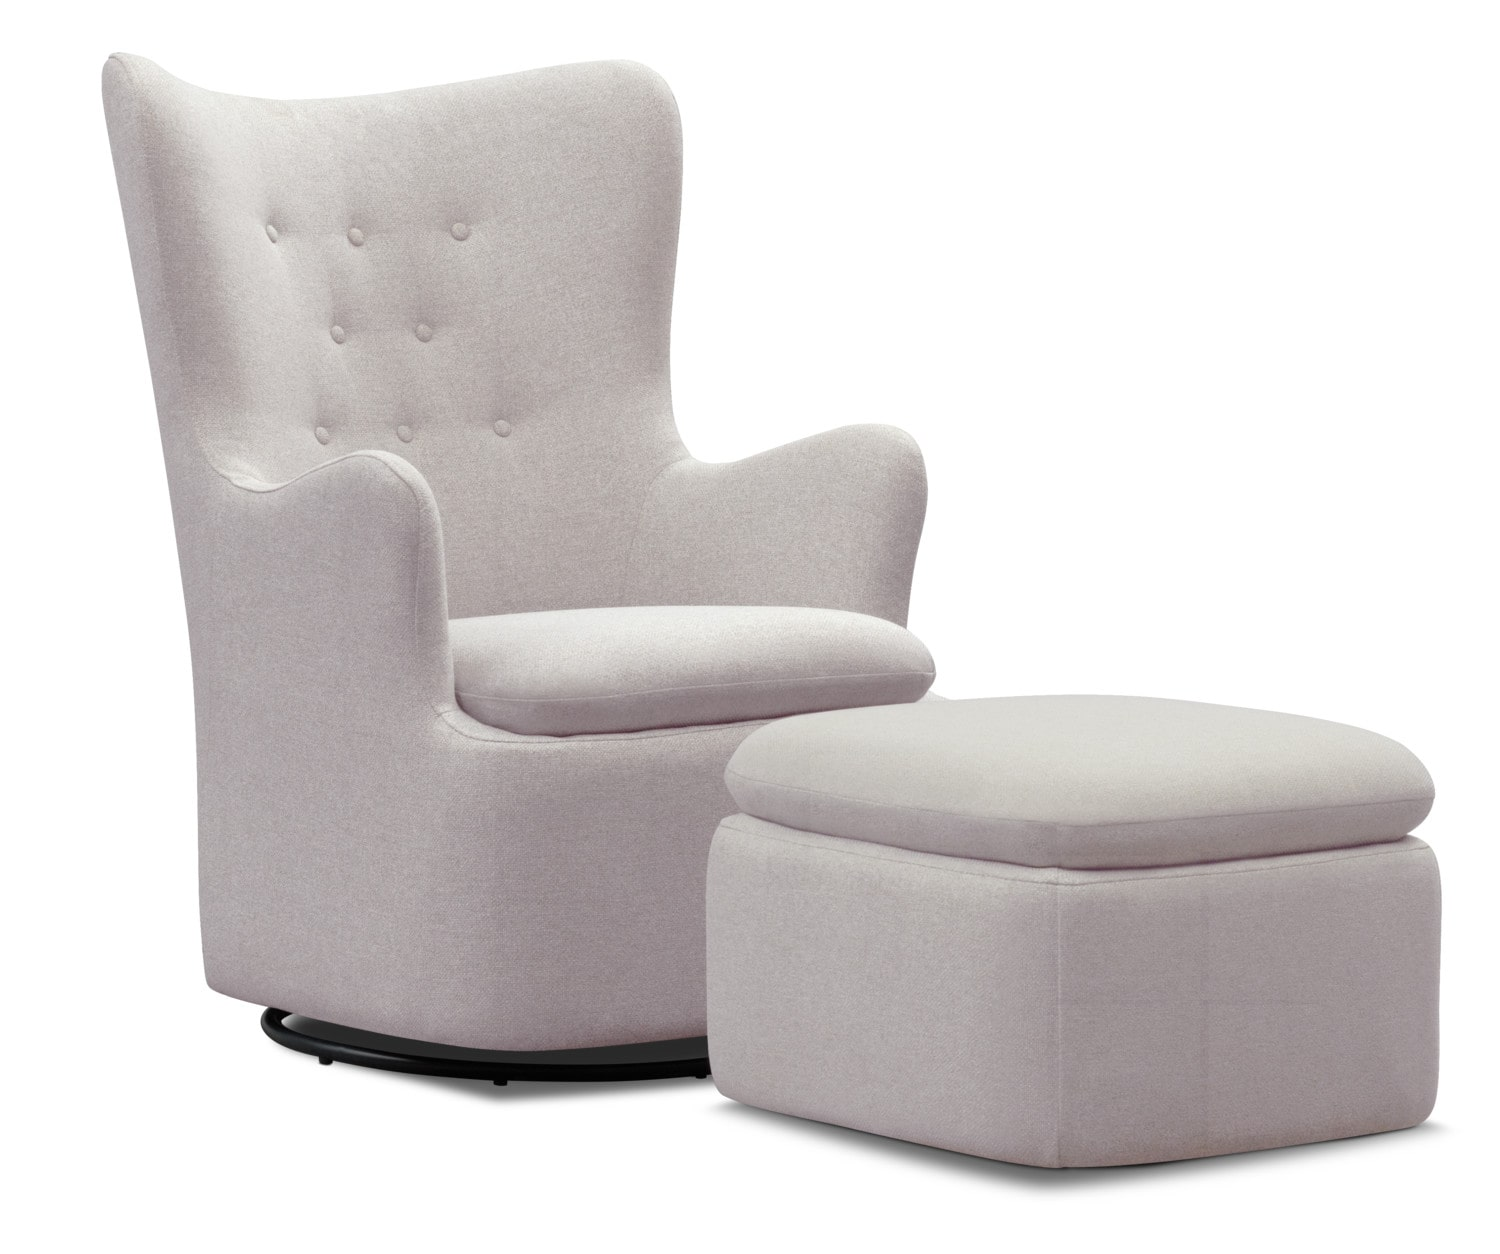 Chair And Ottoman Set Addie Swivel Chair And Ottoman Set Gray